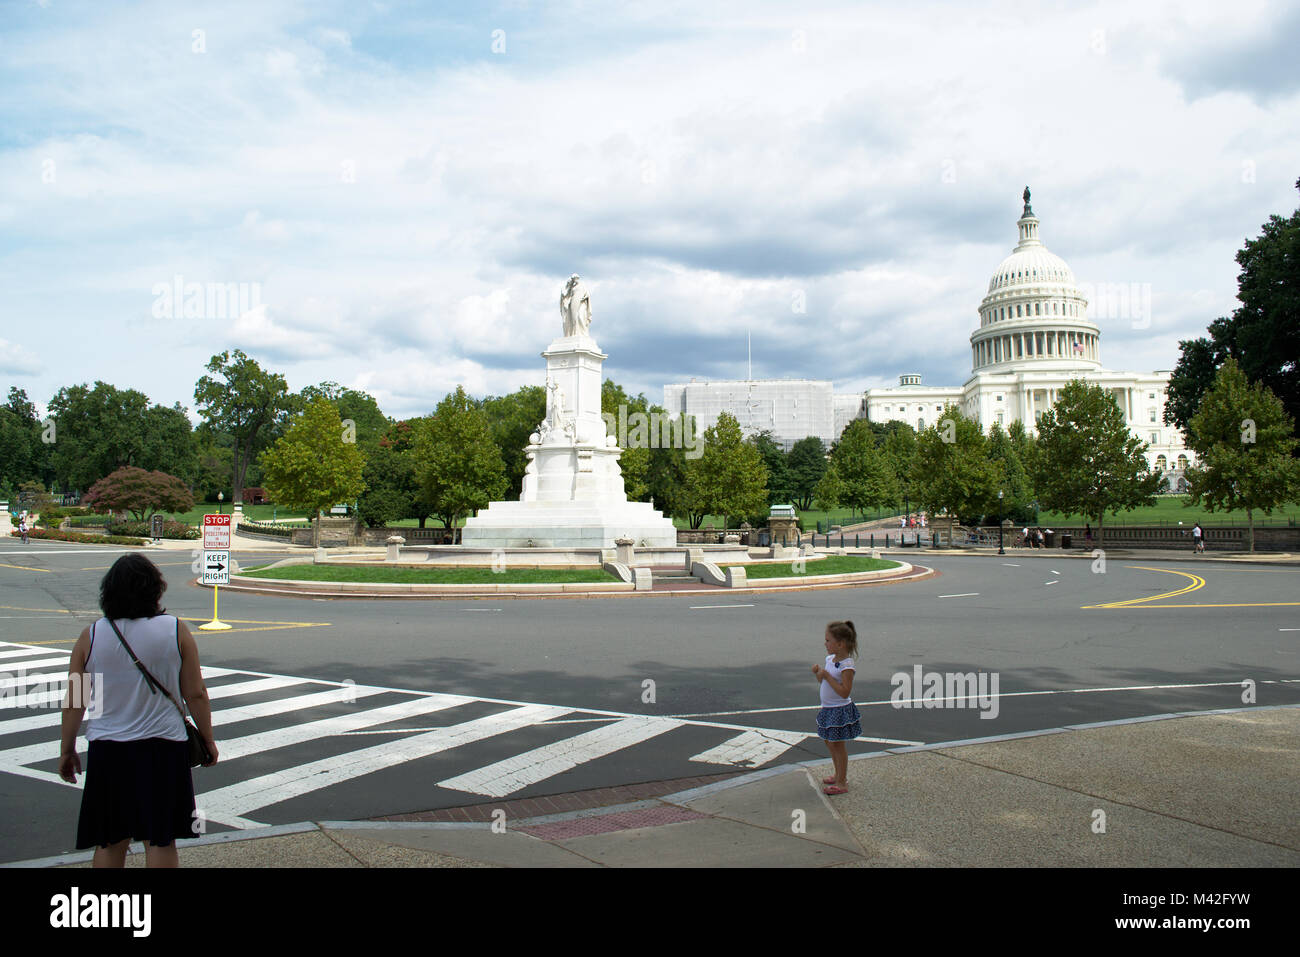 US Capital on the west side with cloudy skies and a woman and child crossing the street - Stock Image